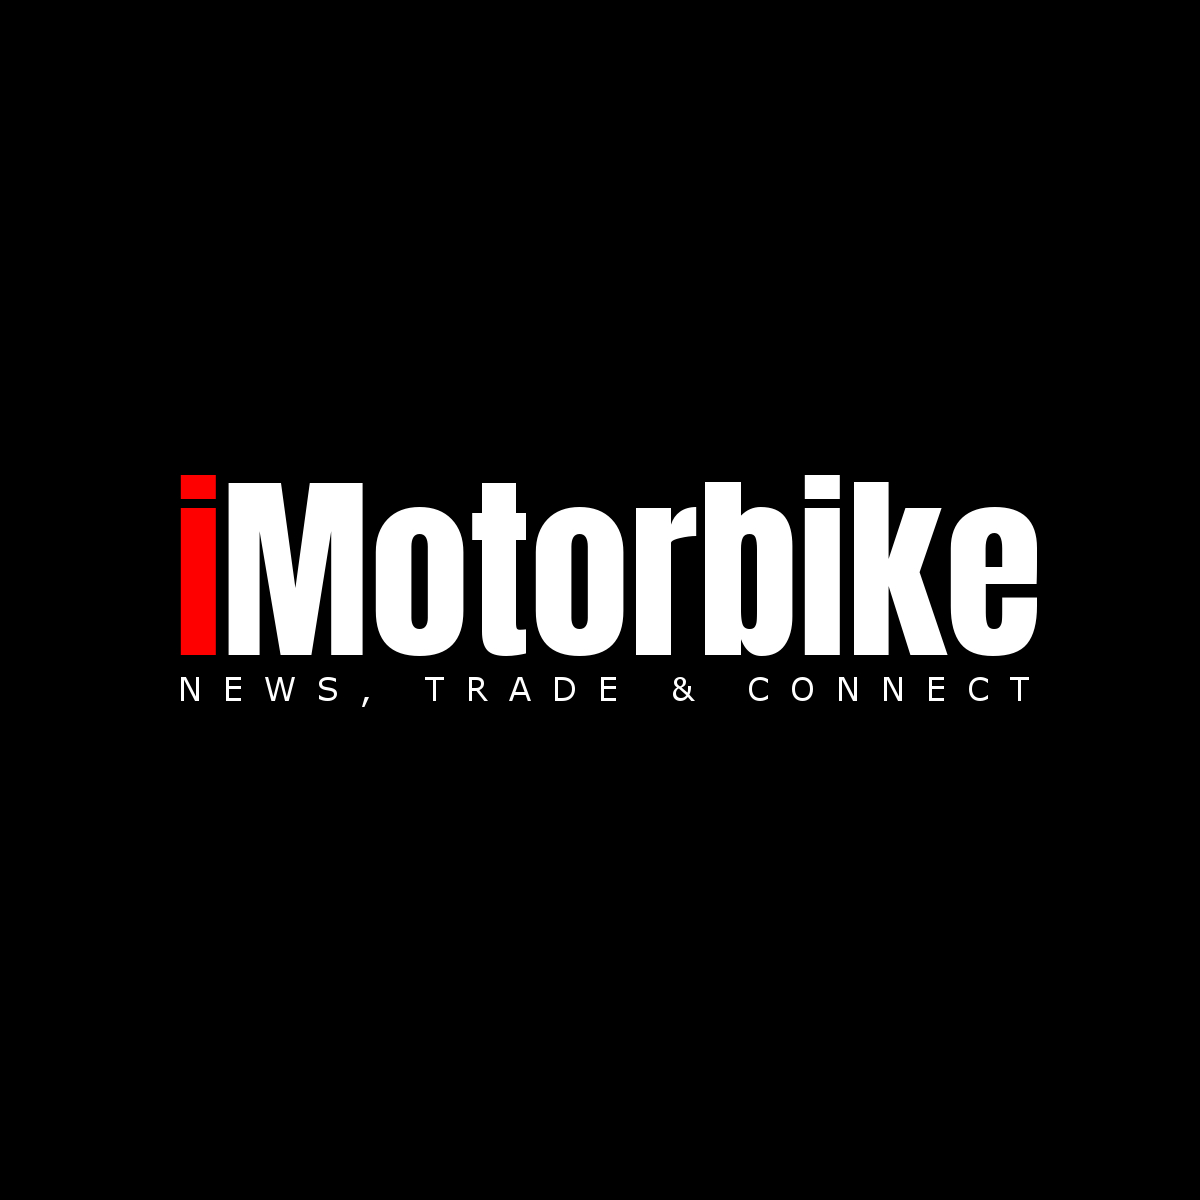 Body & Frame Motorcycles in Malaysia | iMotorbike